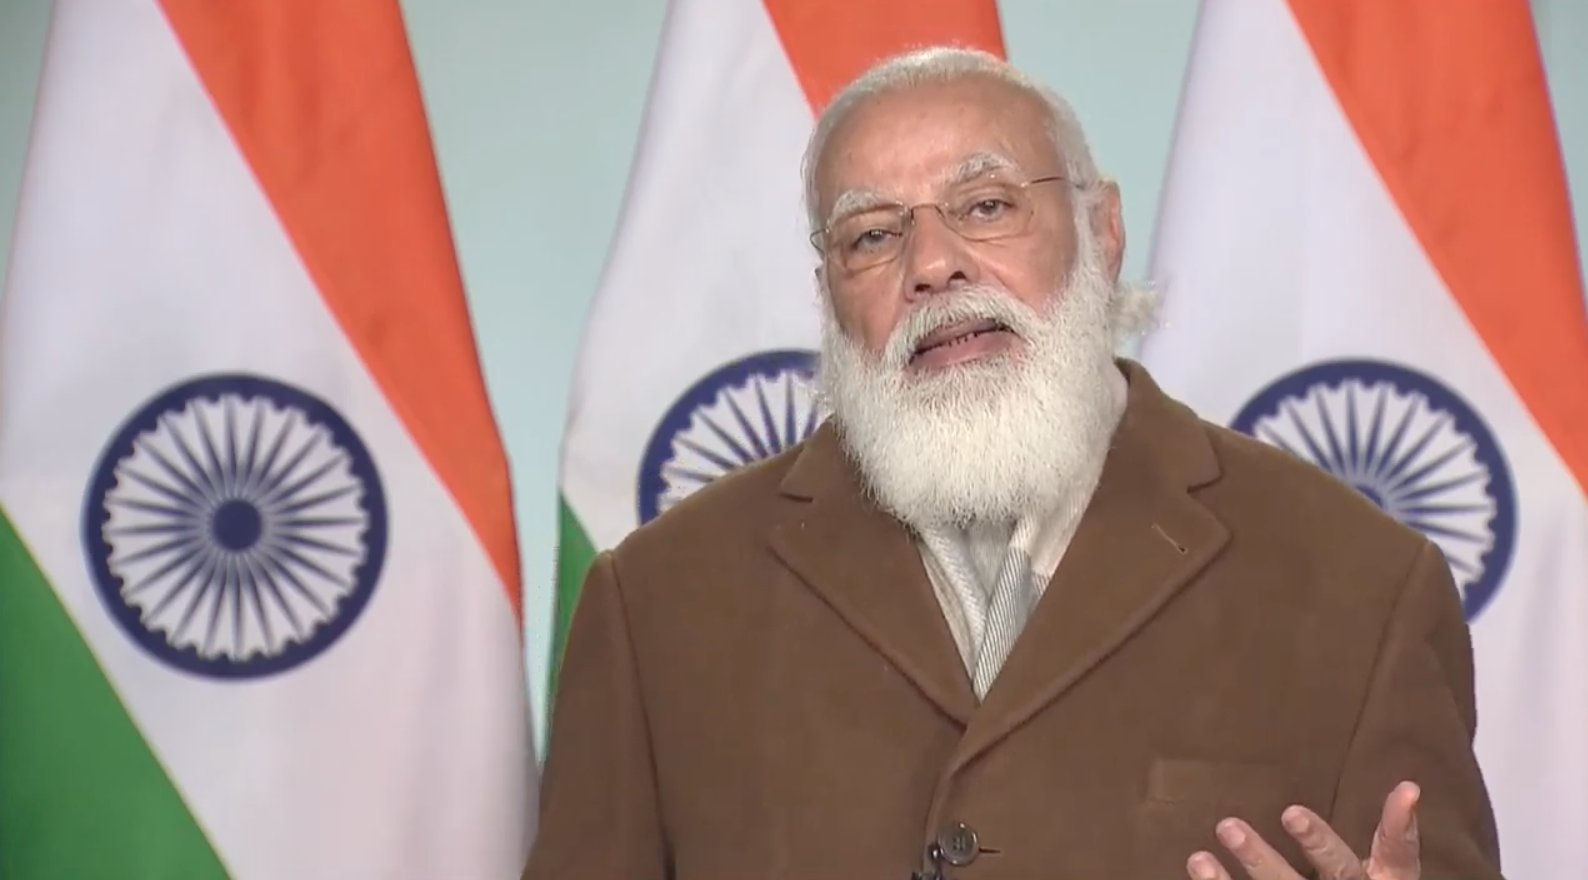 End agitation, hold talks: Modi to farmers